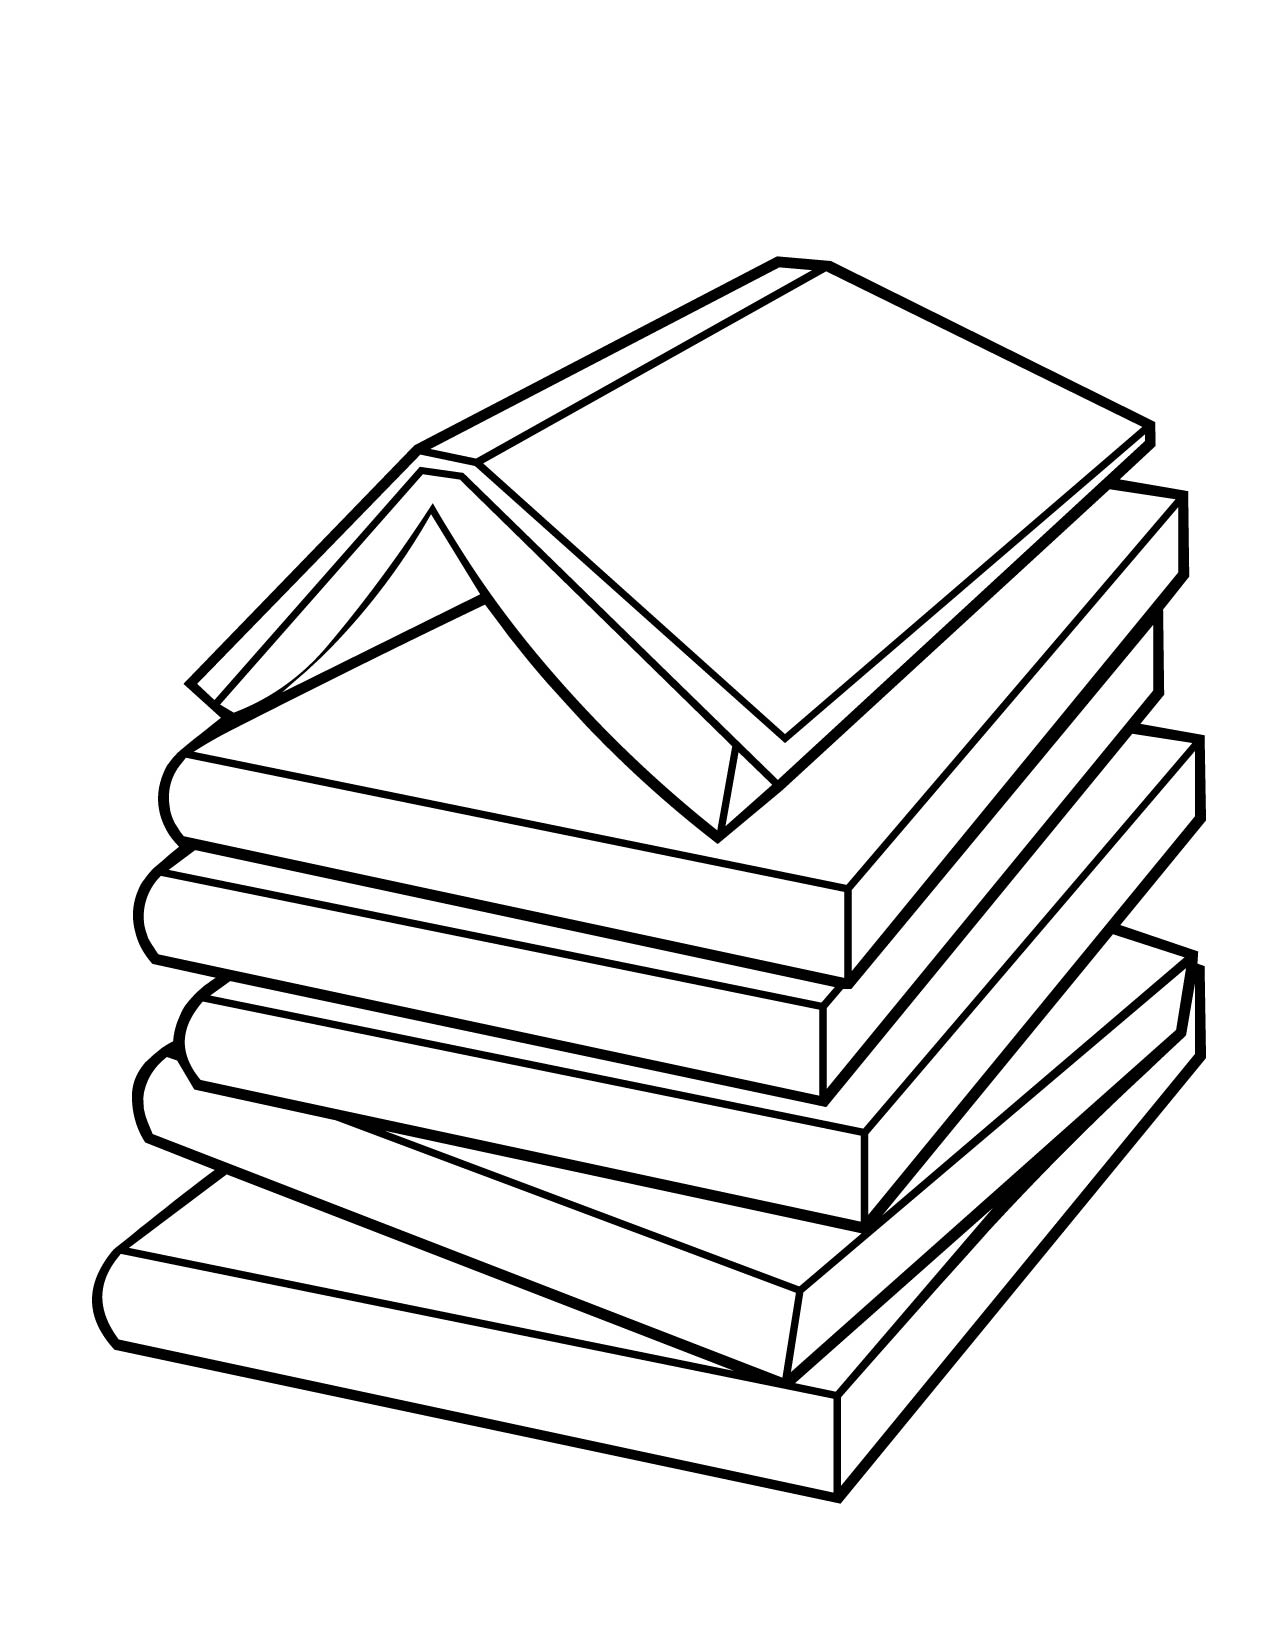 book coloring pages - photo#11